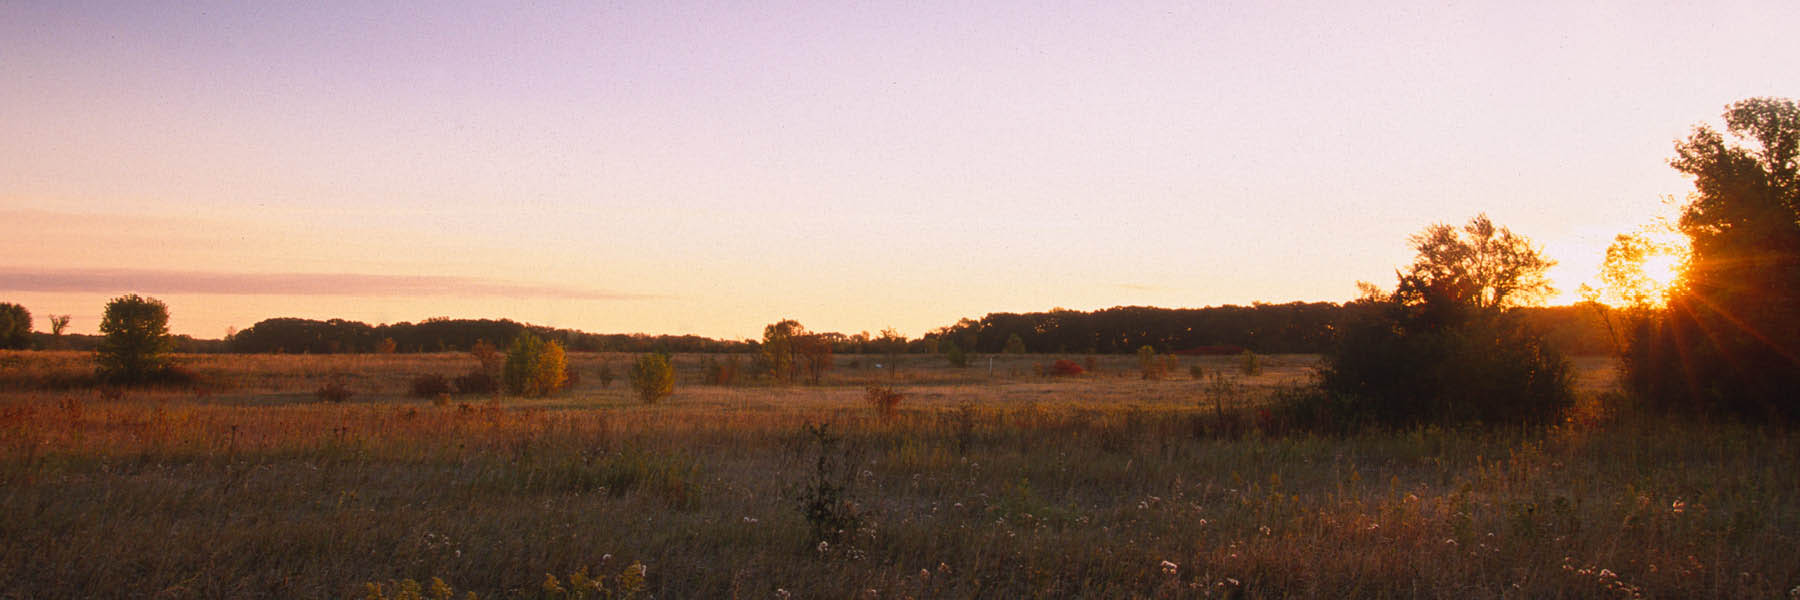 Panorama shot of prairie during sunset.